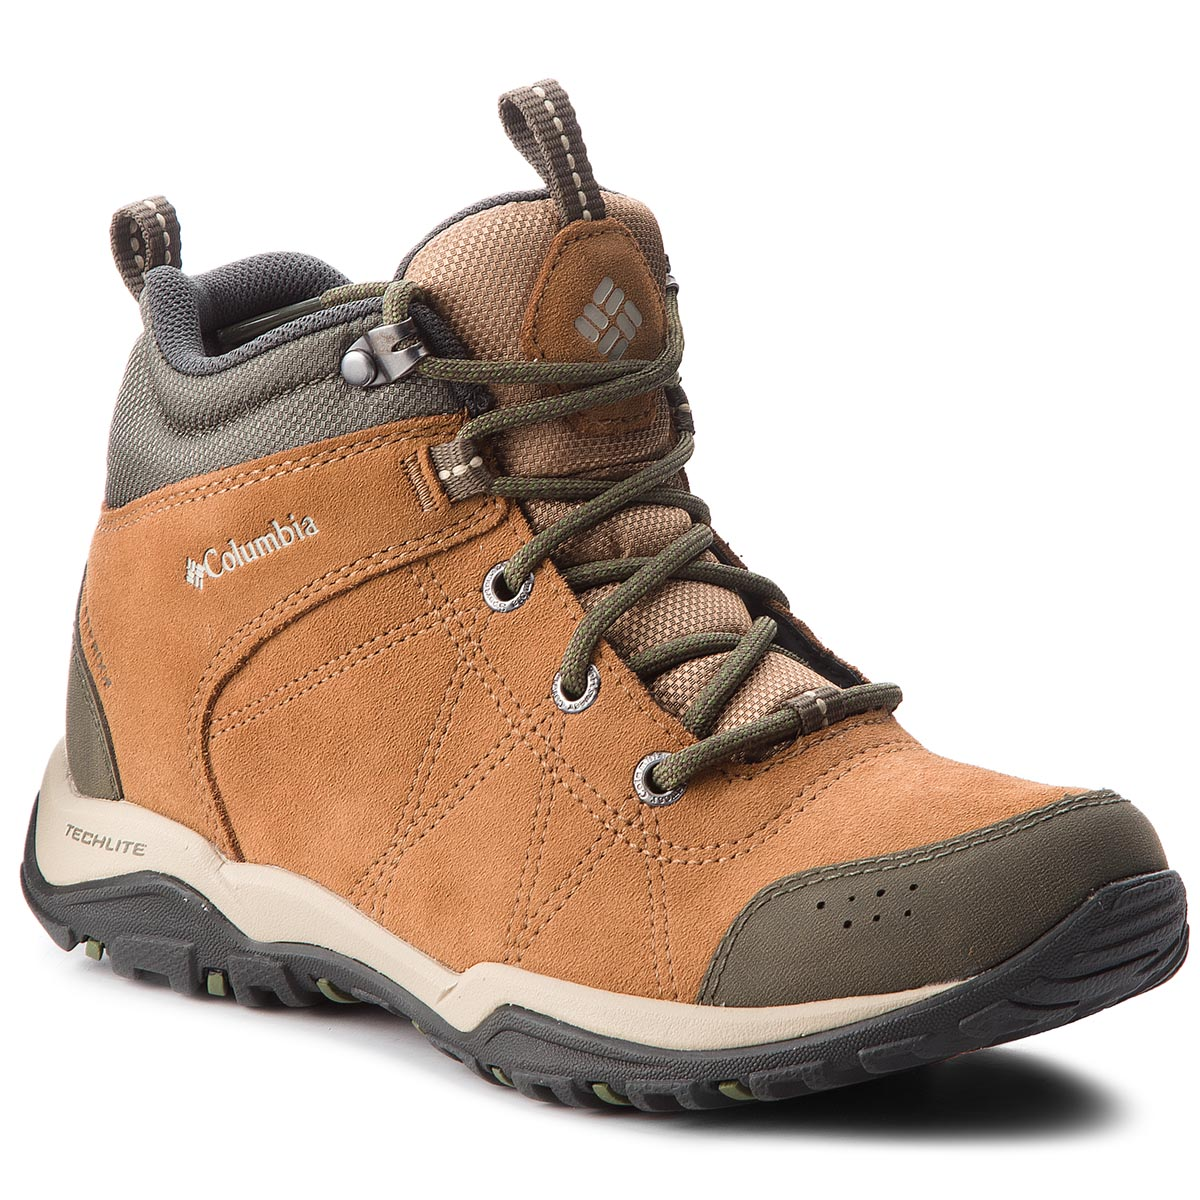 Turistiniai batai COLUMBIA - Fire Venture Mid Suede Waterproof BL1717 Elk/Ancient Fossil 286